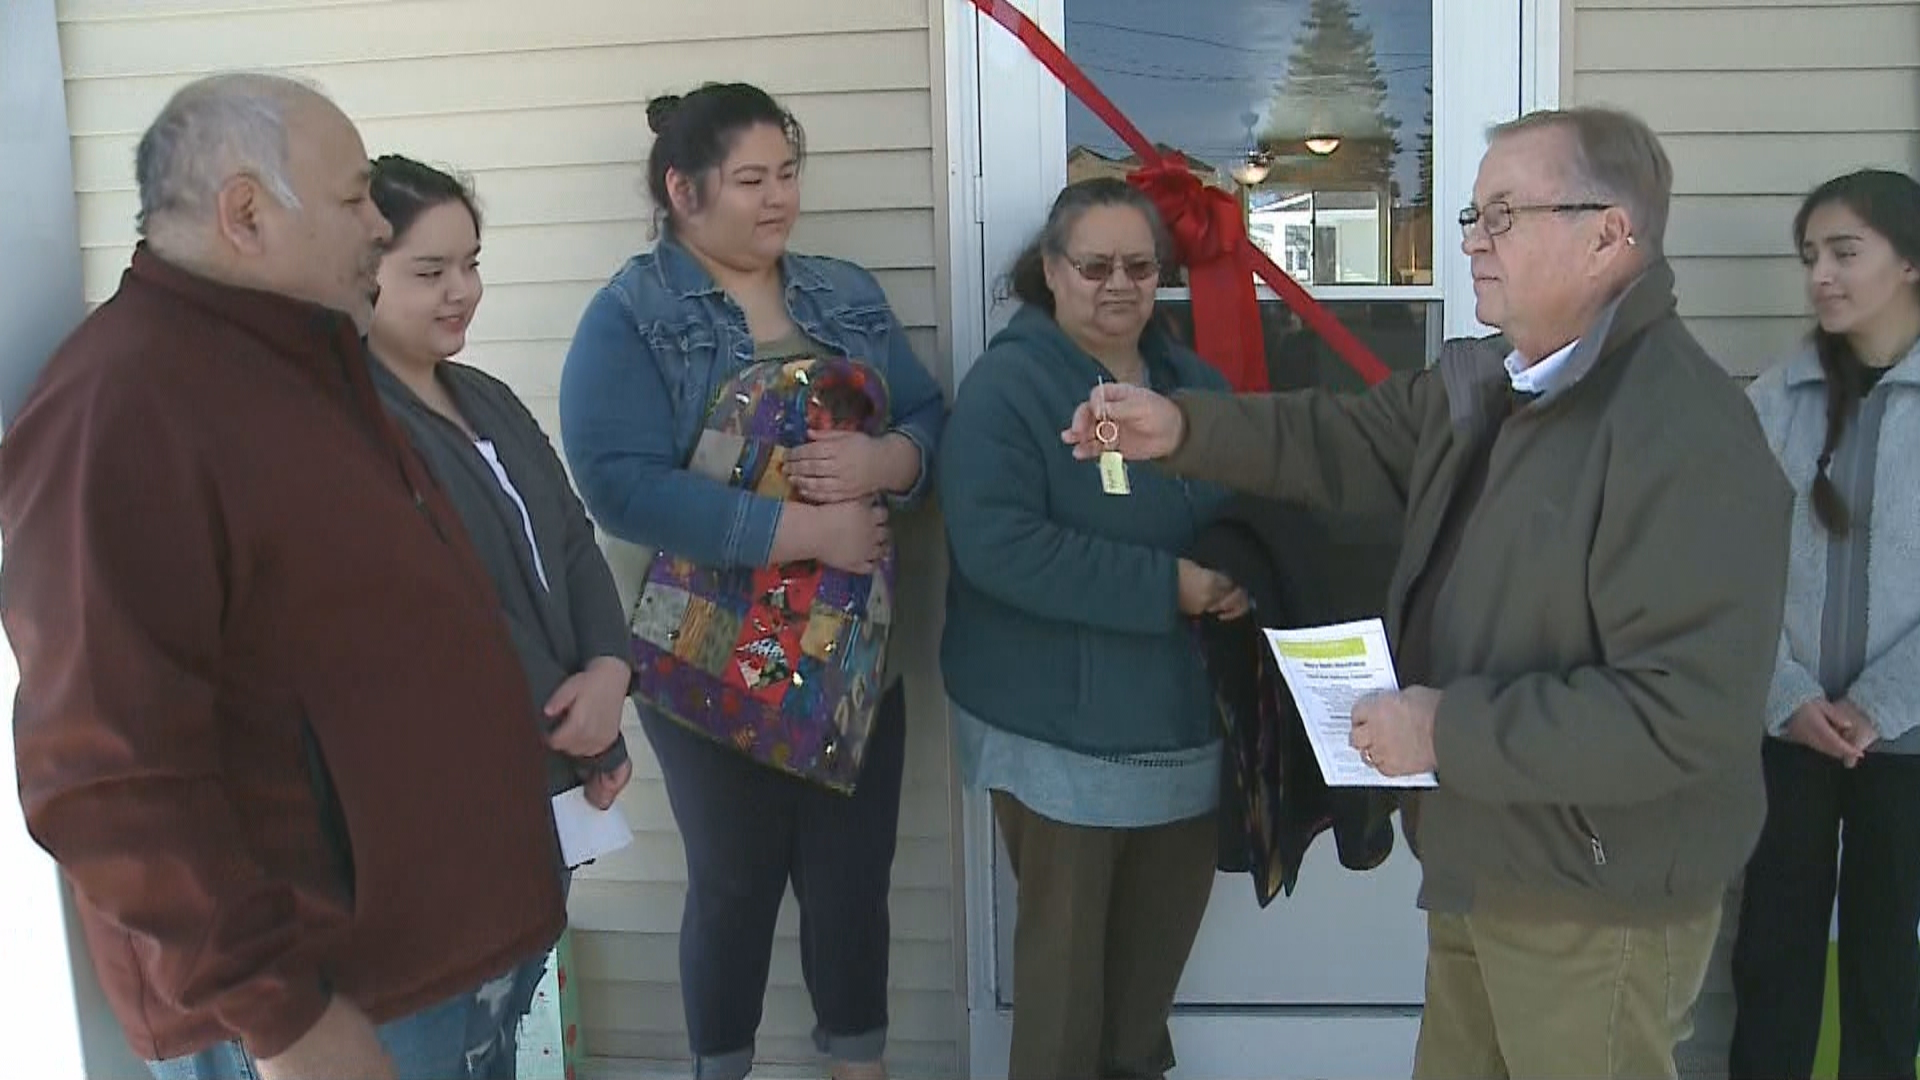 The Martinez Family gets the keys to their new home built by high school students through the Fox Cities Habitat for Humanity in Appleton, January 8, 2018. (WLUK)<p></p>